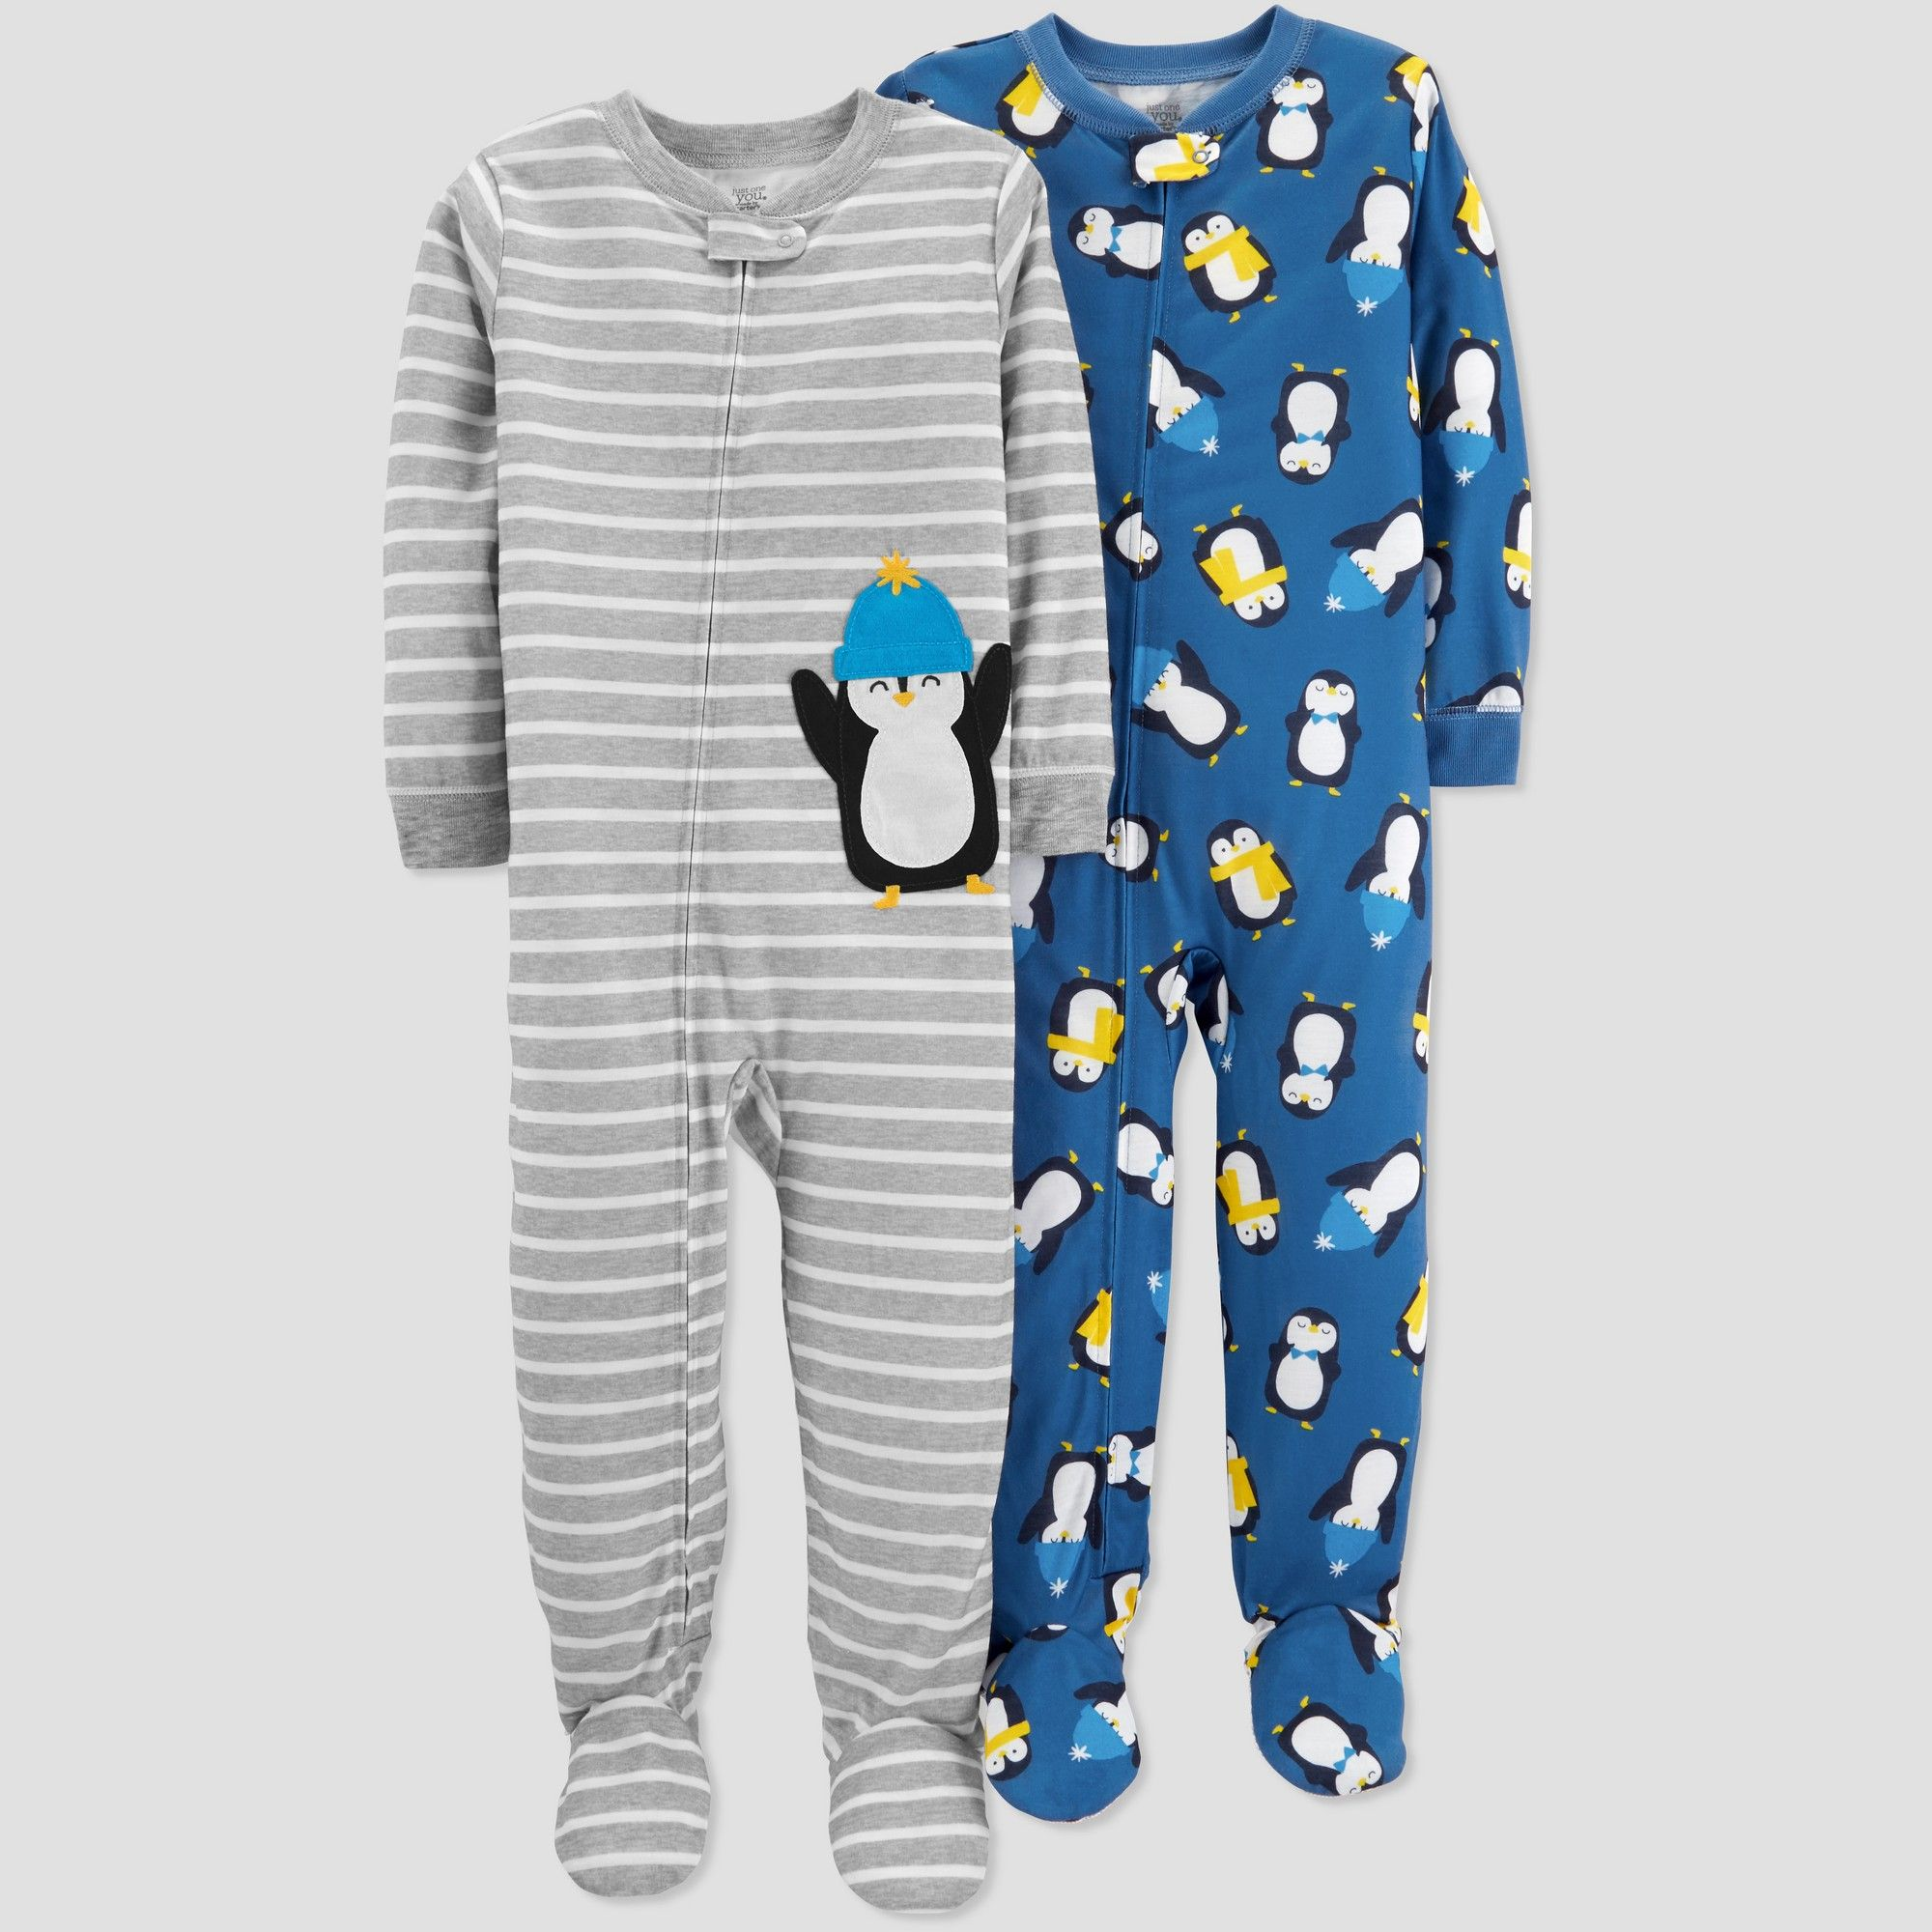 31b8e0a0003d Toddler Boys  Stripe Penguin Pajama Set - Just One You made by ...